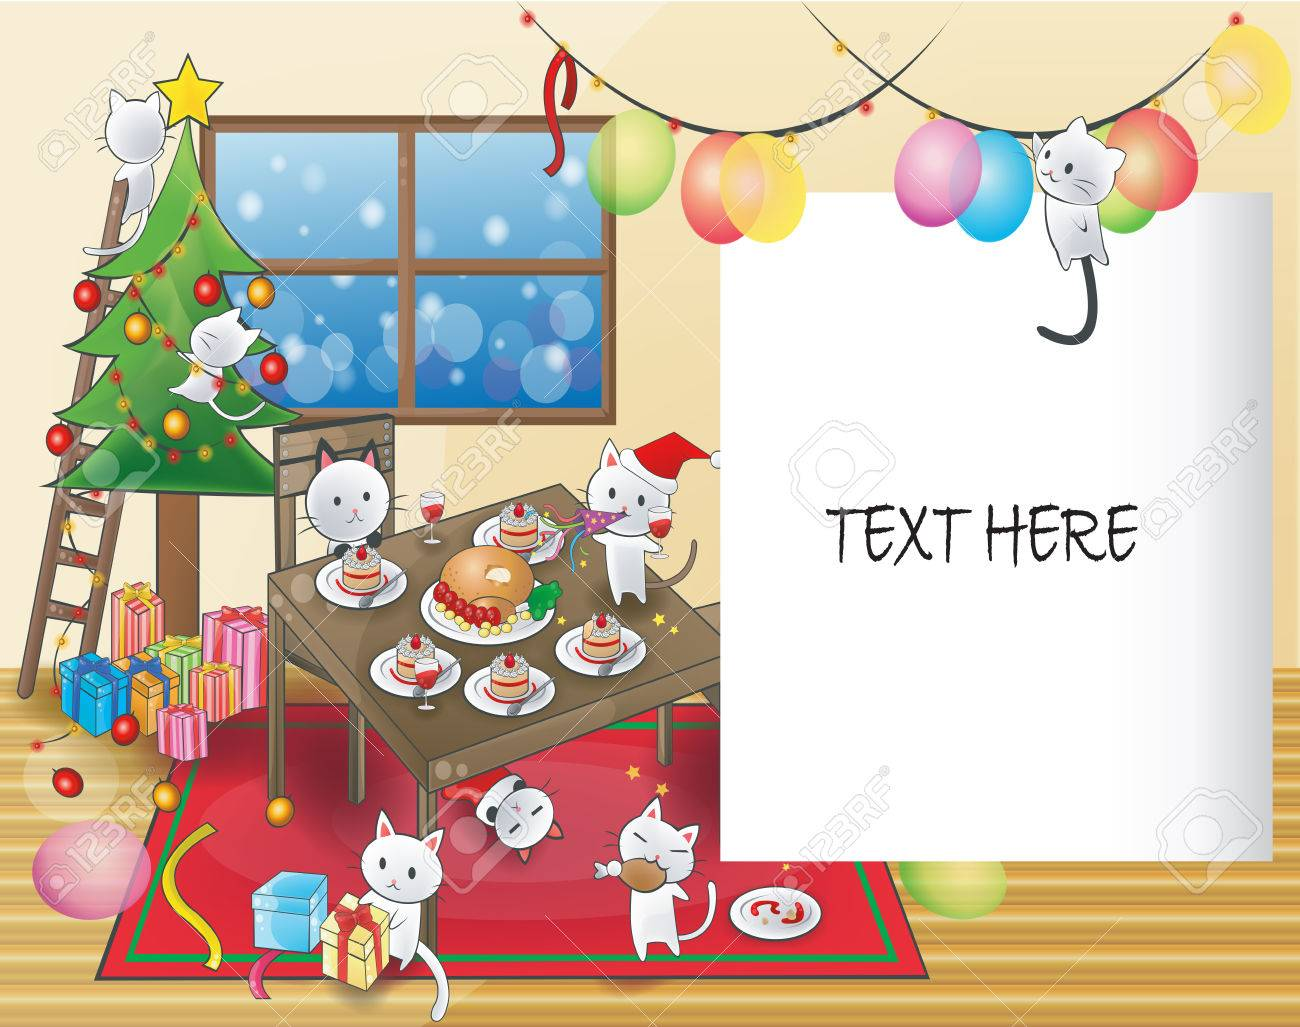 Cute Christmas Party.Cute Cartoon Of Little Kitten Cats Are Celebrating A Christmas